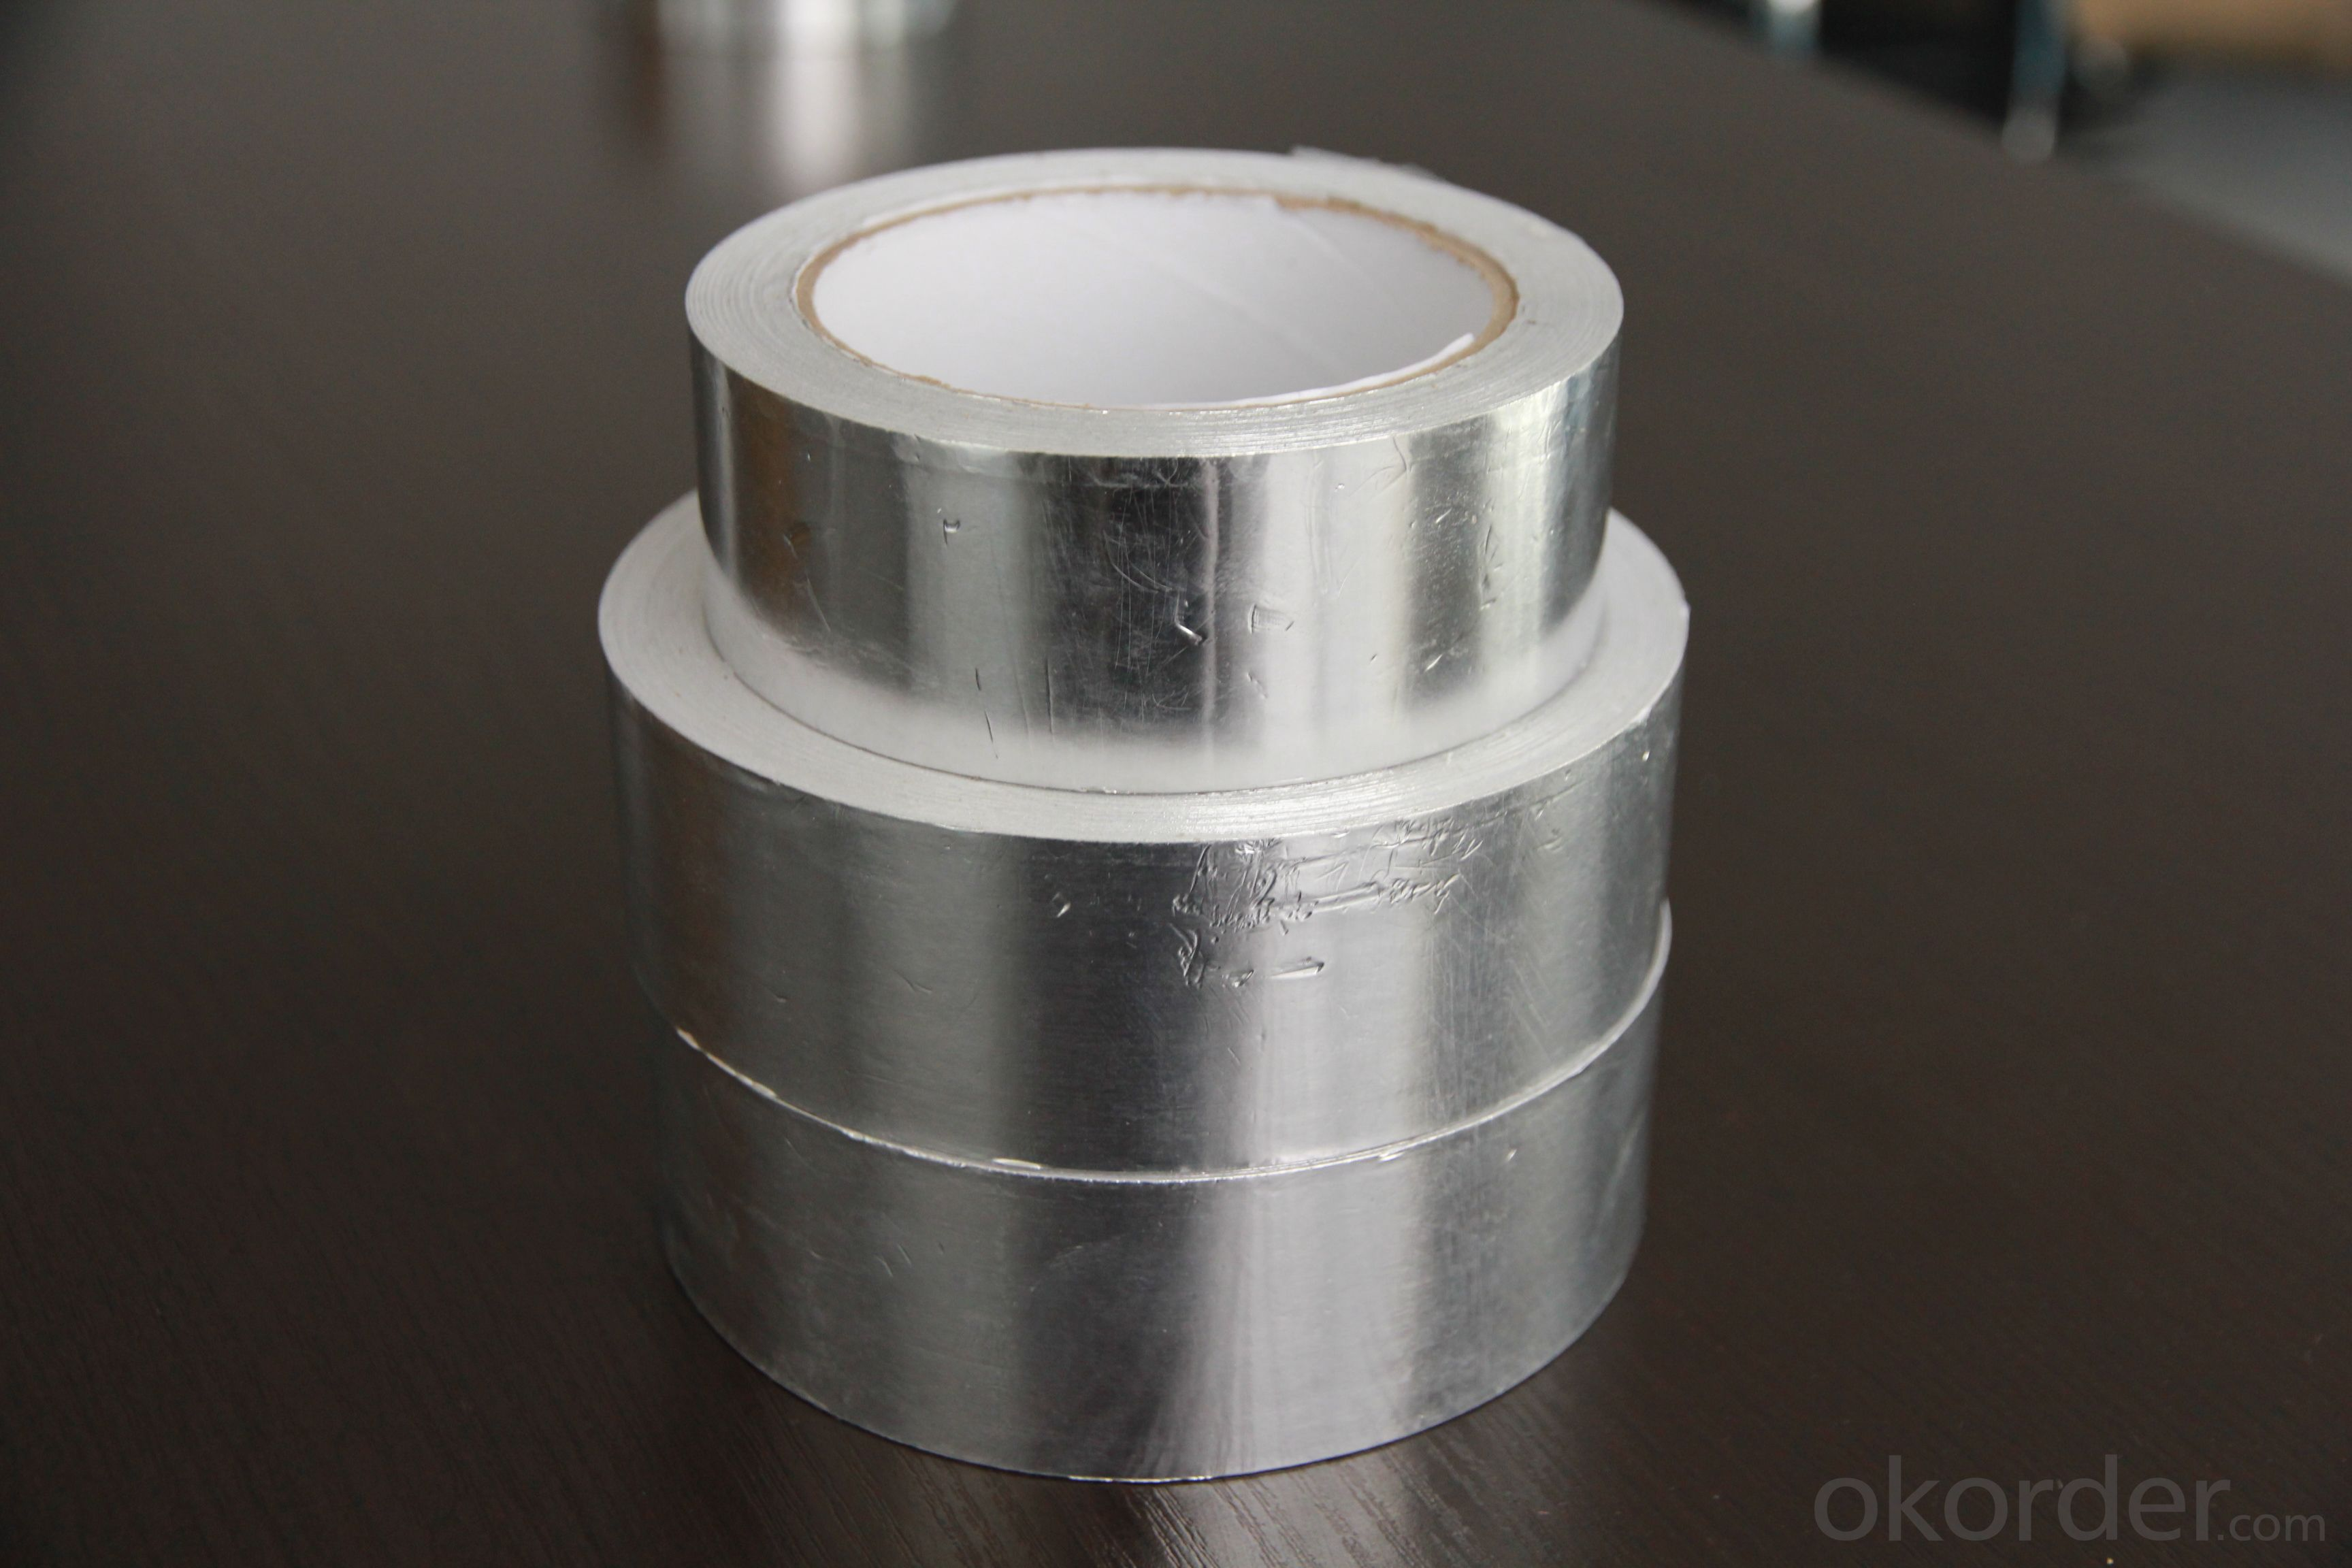 SOLVEN-BASED ACRYLIC ADHESIVE ALUMINUM FOIL TAPE T-FGR1801FR